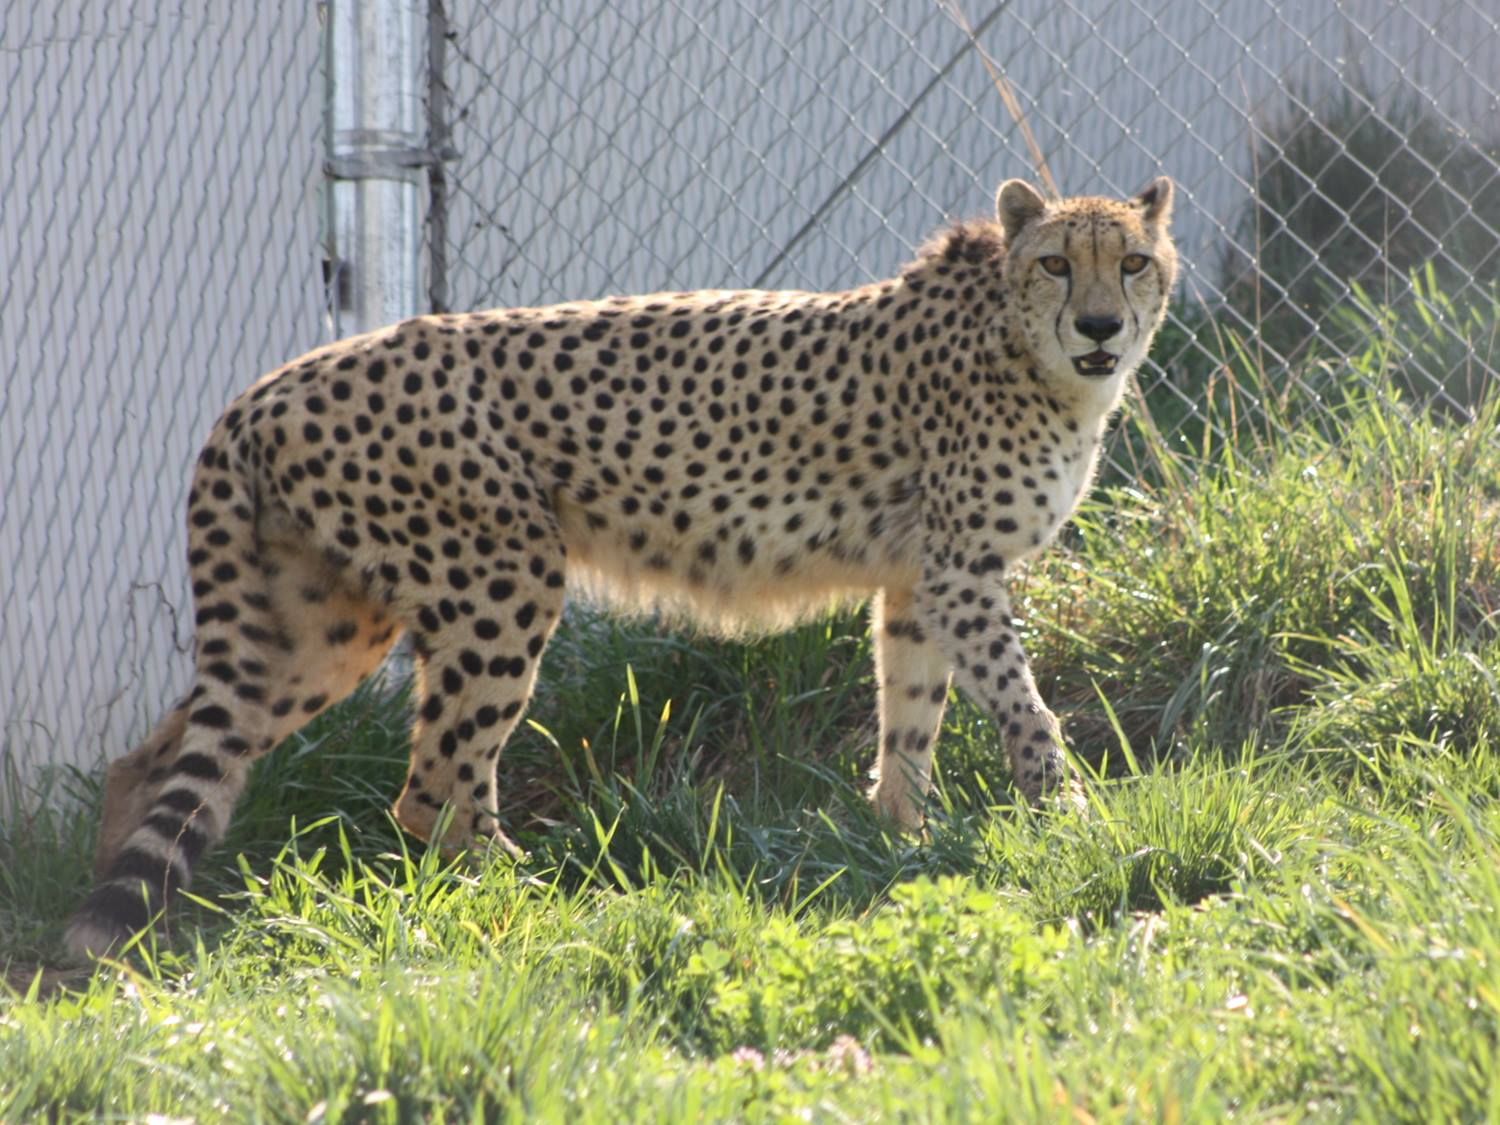 National Zoo says 12-year-old cheetah has died